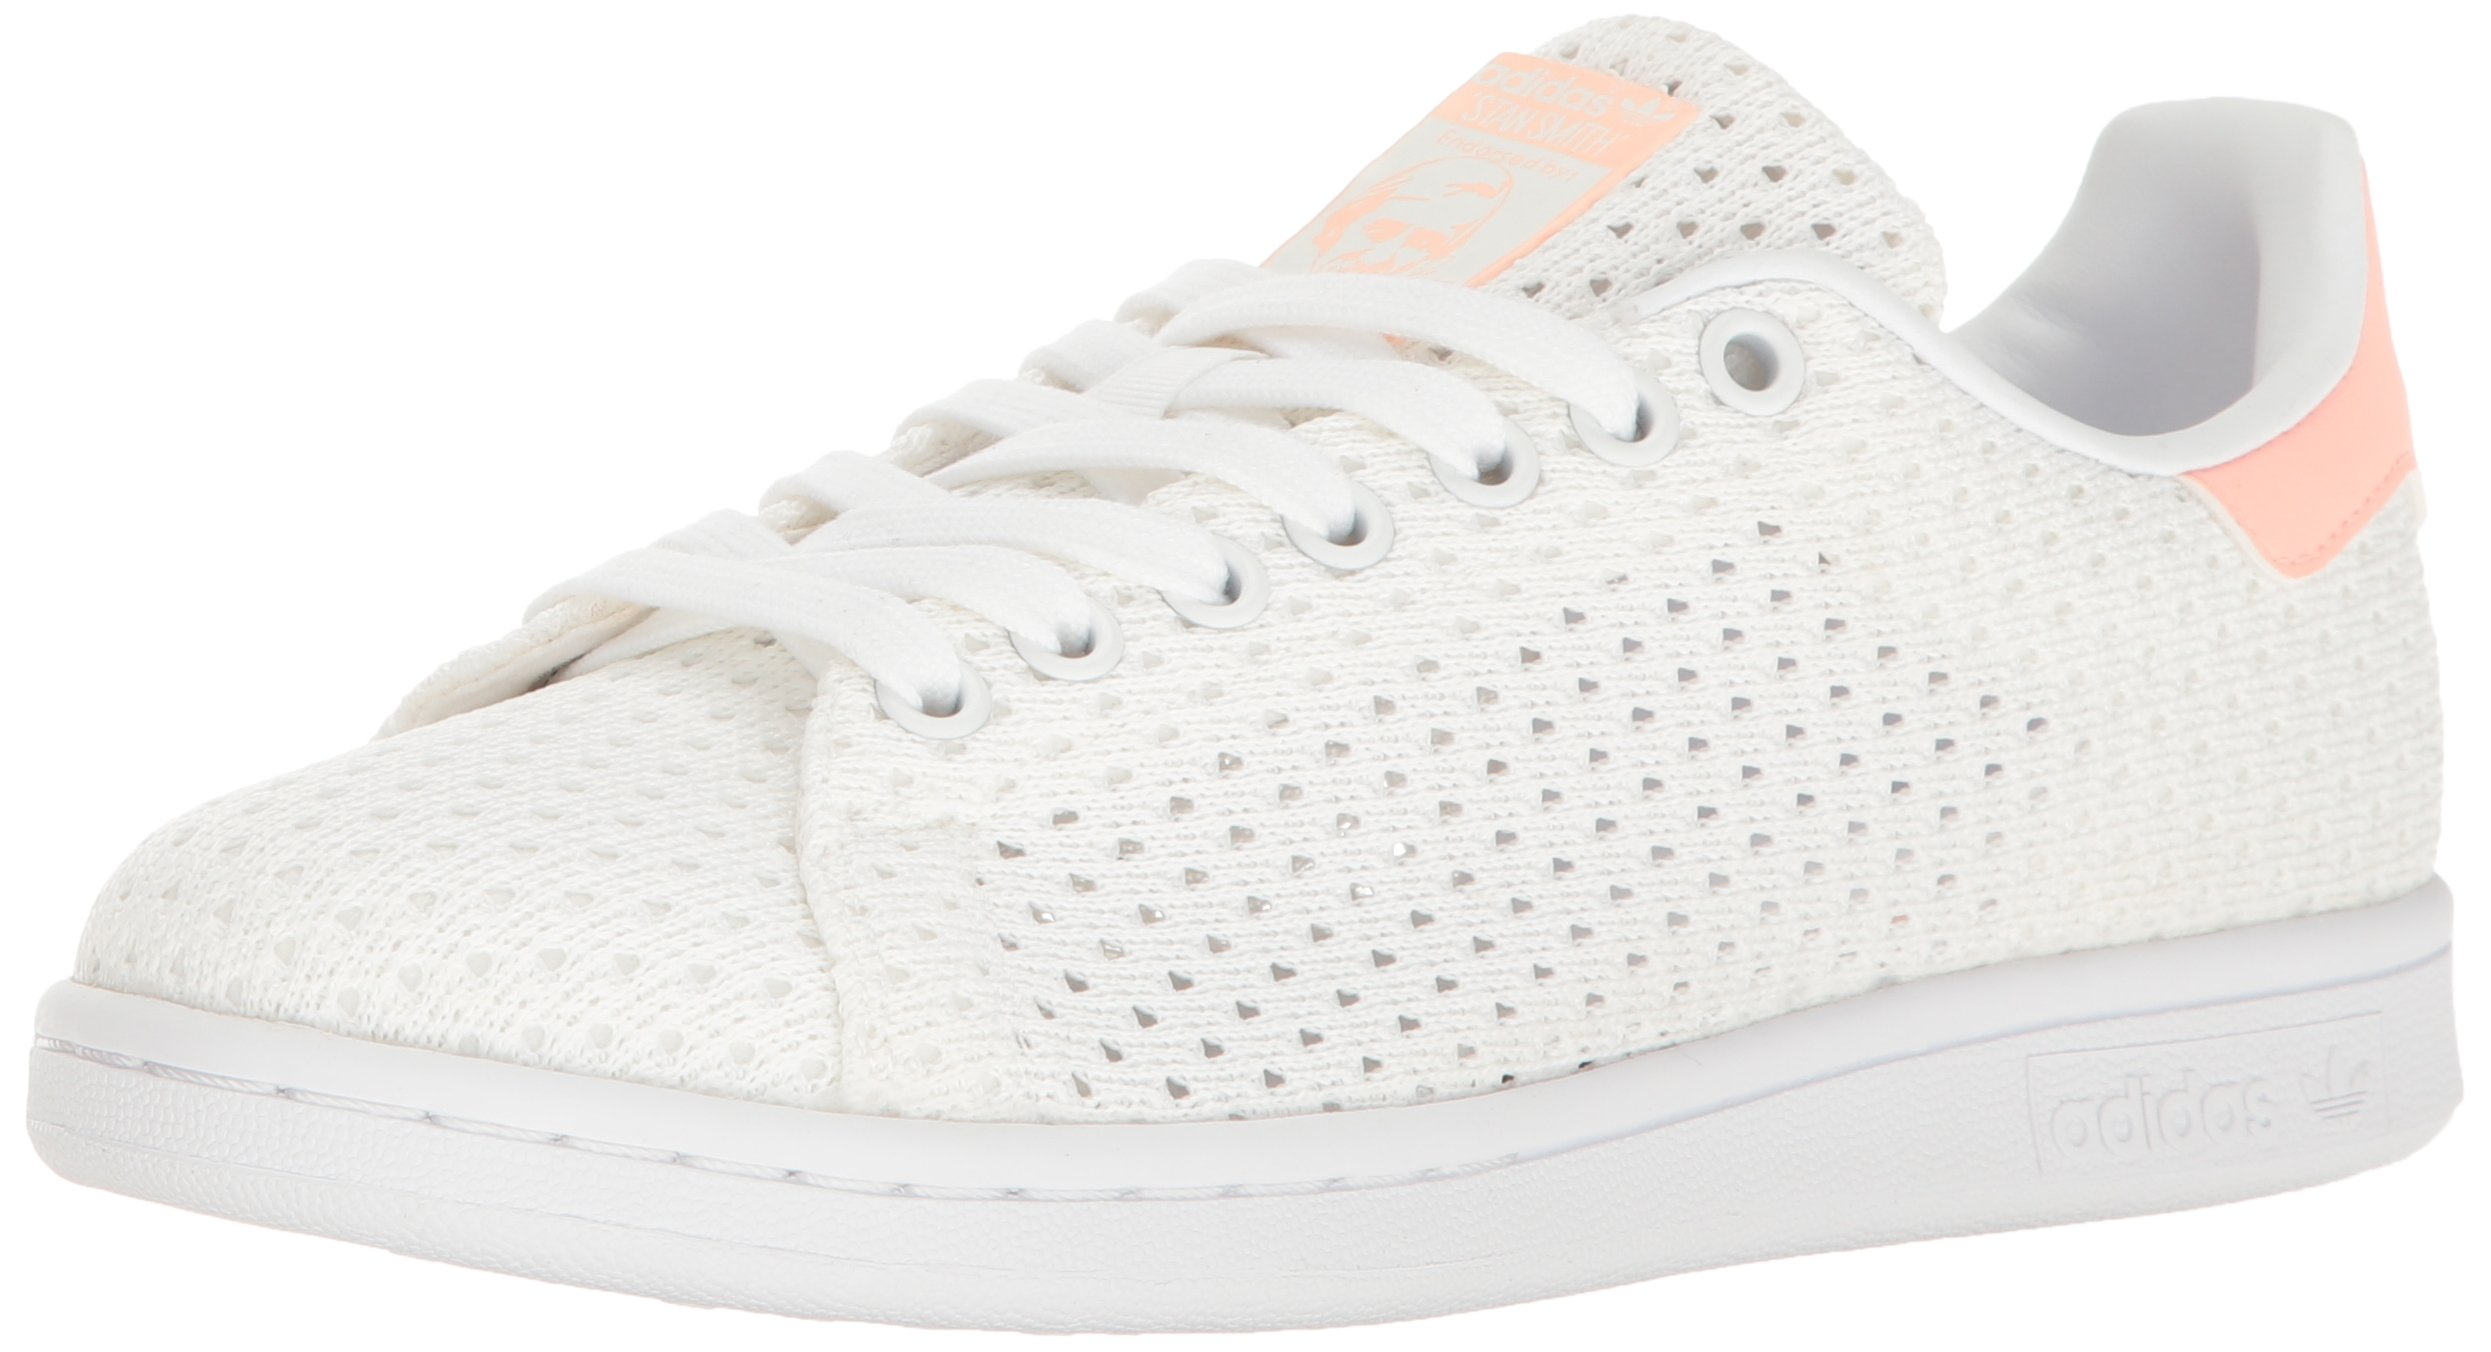 huge selection of 28557 af6aa Galleon - Adidas Originals Womens Shoes Stan Smith Fashion Sneakers,  WhiteWhiteHaze Coral, 9 M US